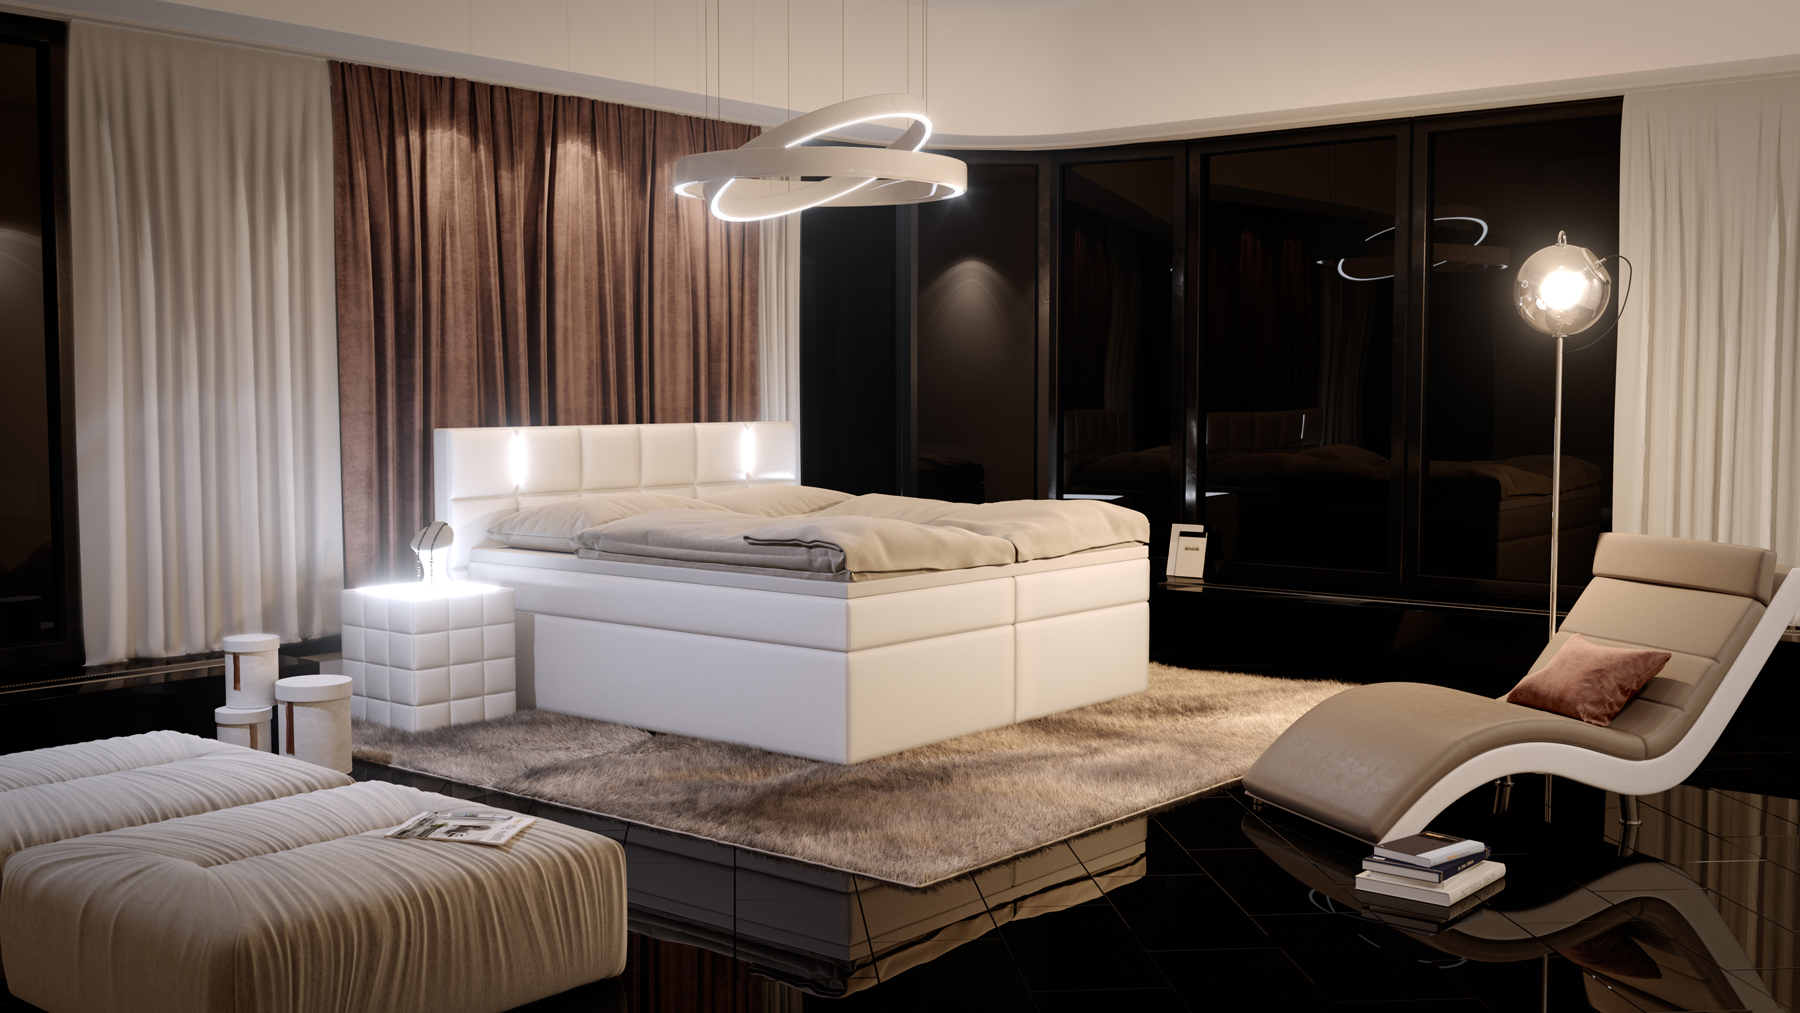 sam boxspringbett mit led hotelbett 200 x 200 cm wei salerno demn chst. Black Bedroom Furniture Sets. Home Design Ideas